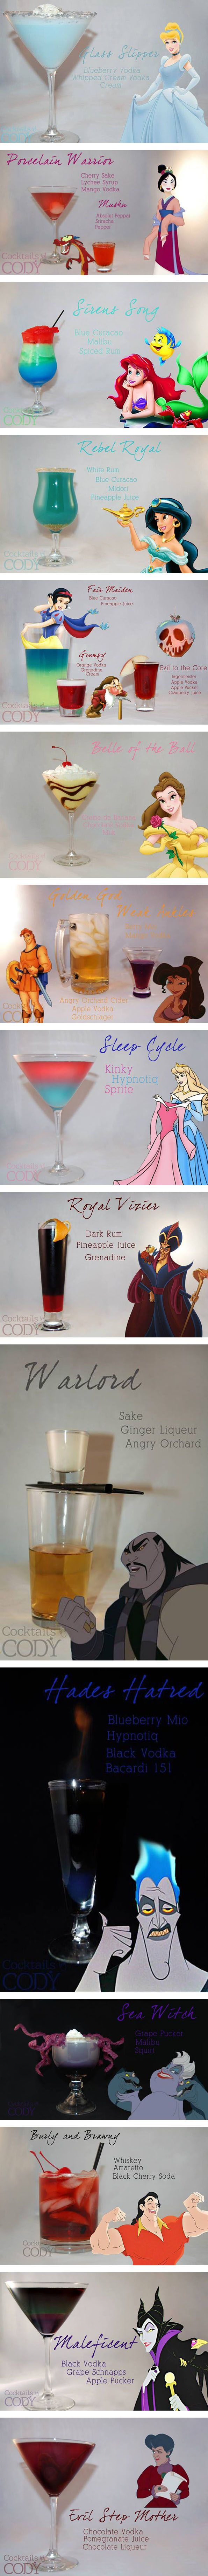 Disney princess themed cocktails. Must make them all...